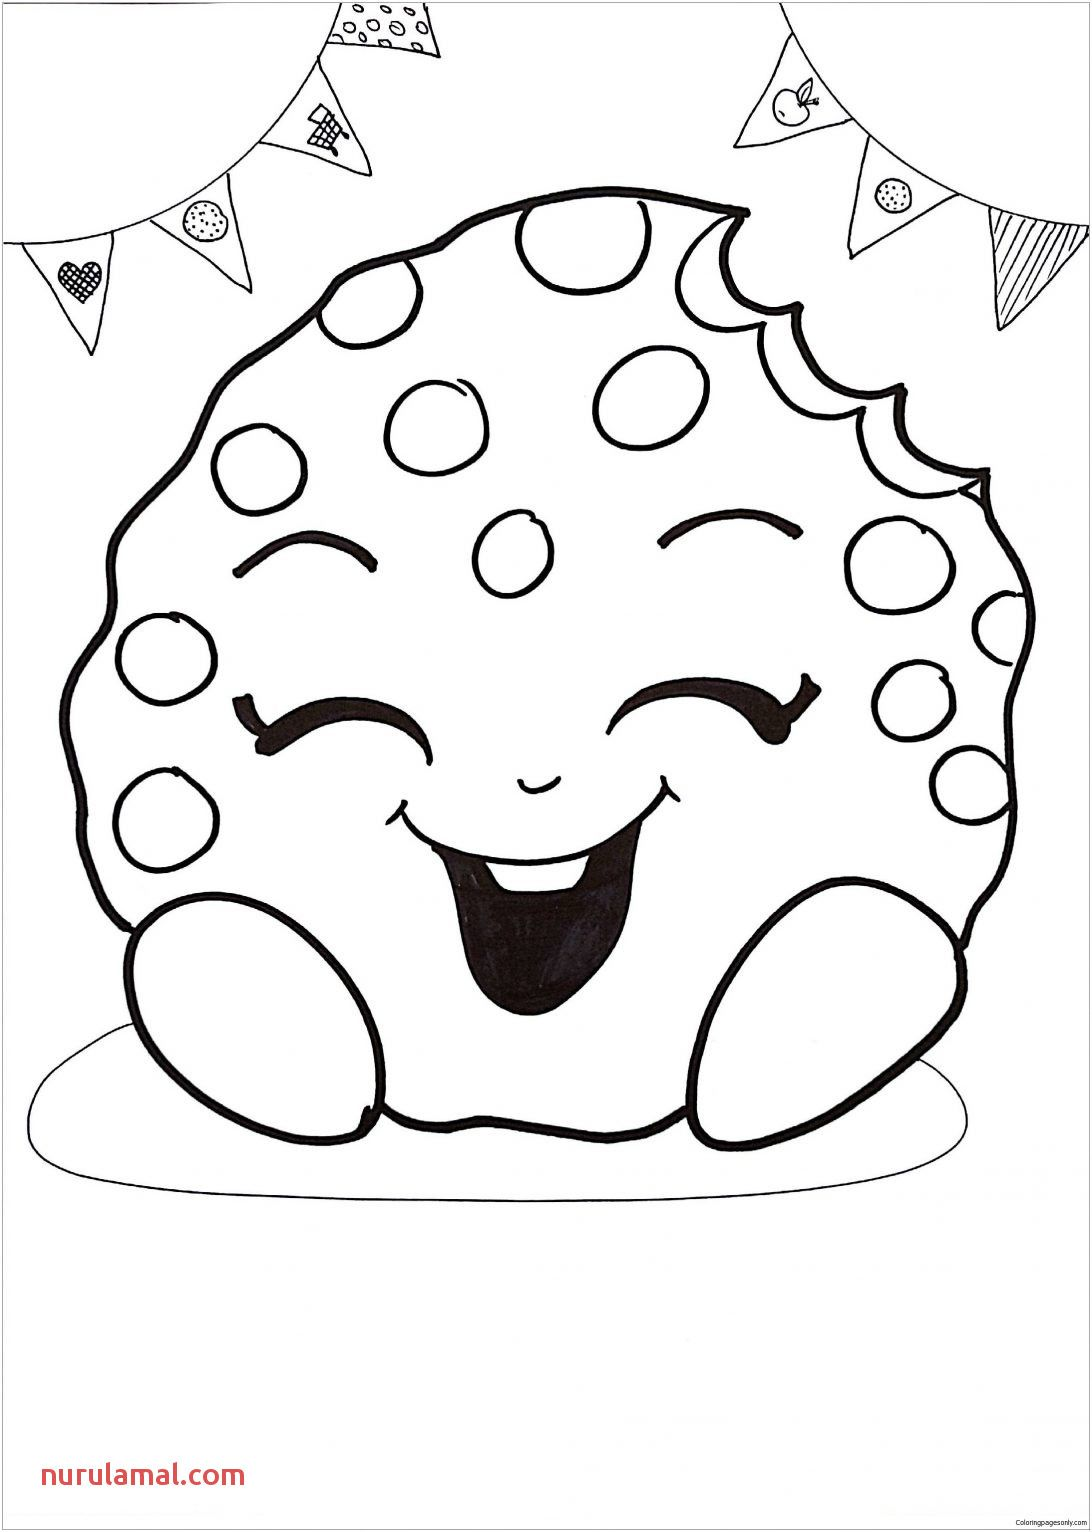 Christmas Math Coloring Worksheets 3rd Grade Shopkins Colouring Pages Shopkin Coloring Pages Coloring Books [ 1532 x 1092 Pixel ]